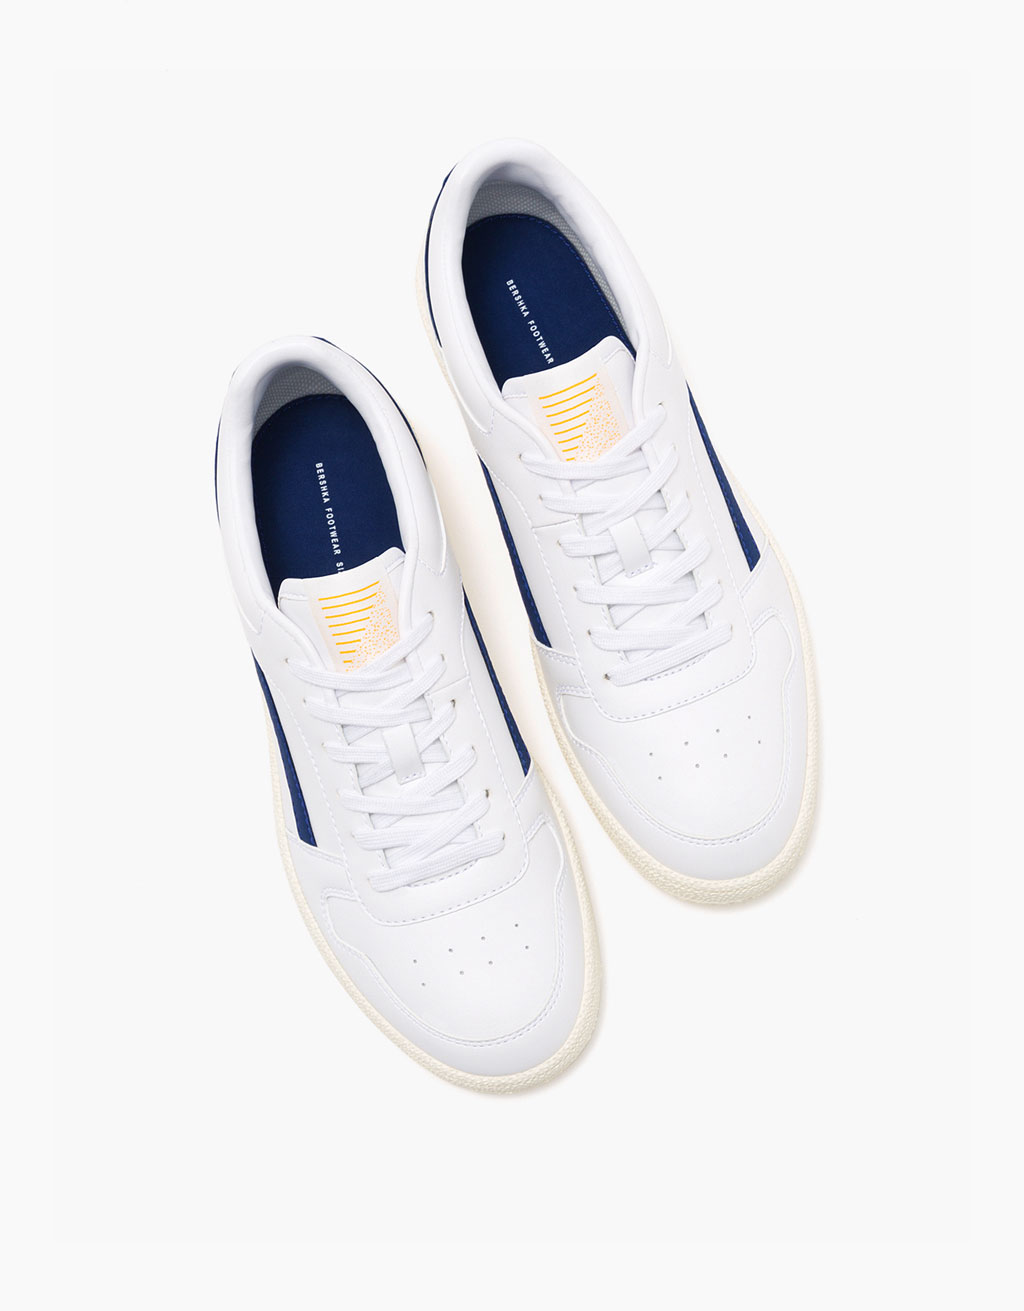 Men's lace-up retro sneakers with blue detail